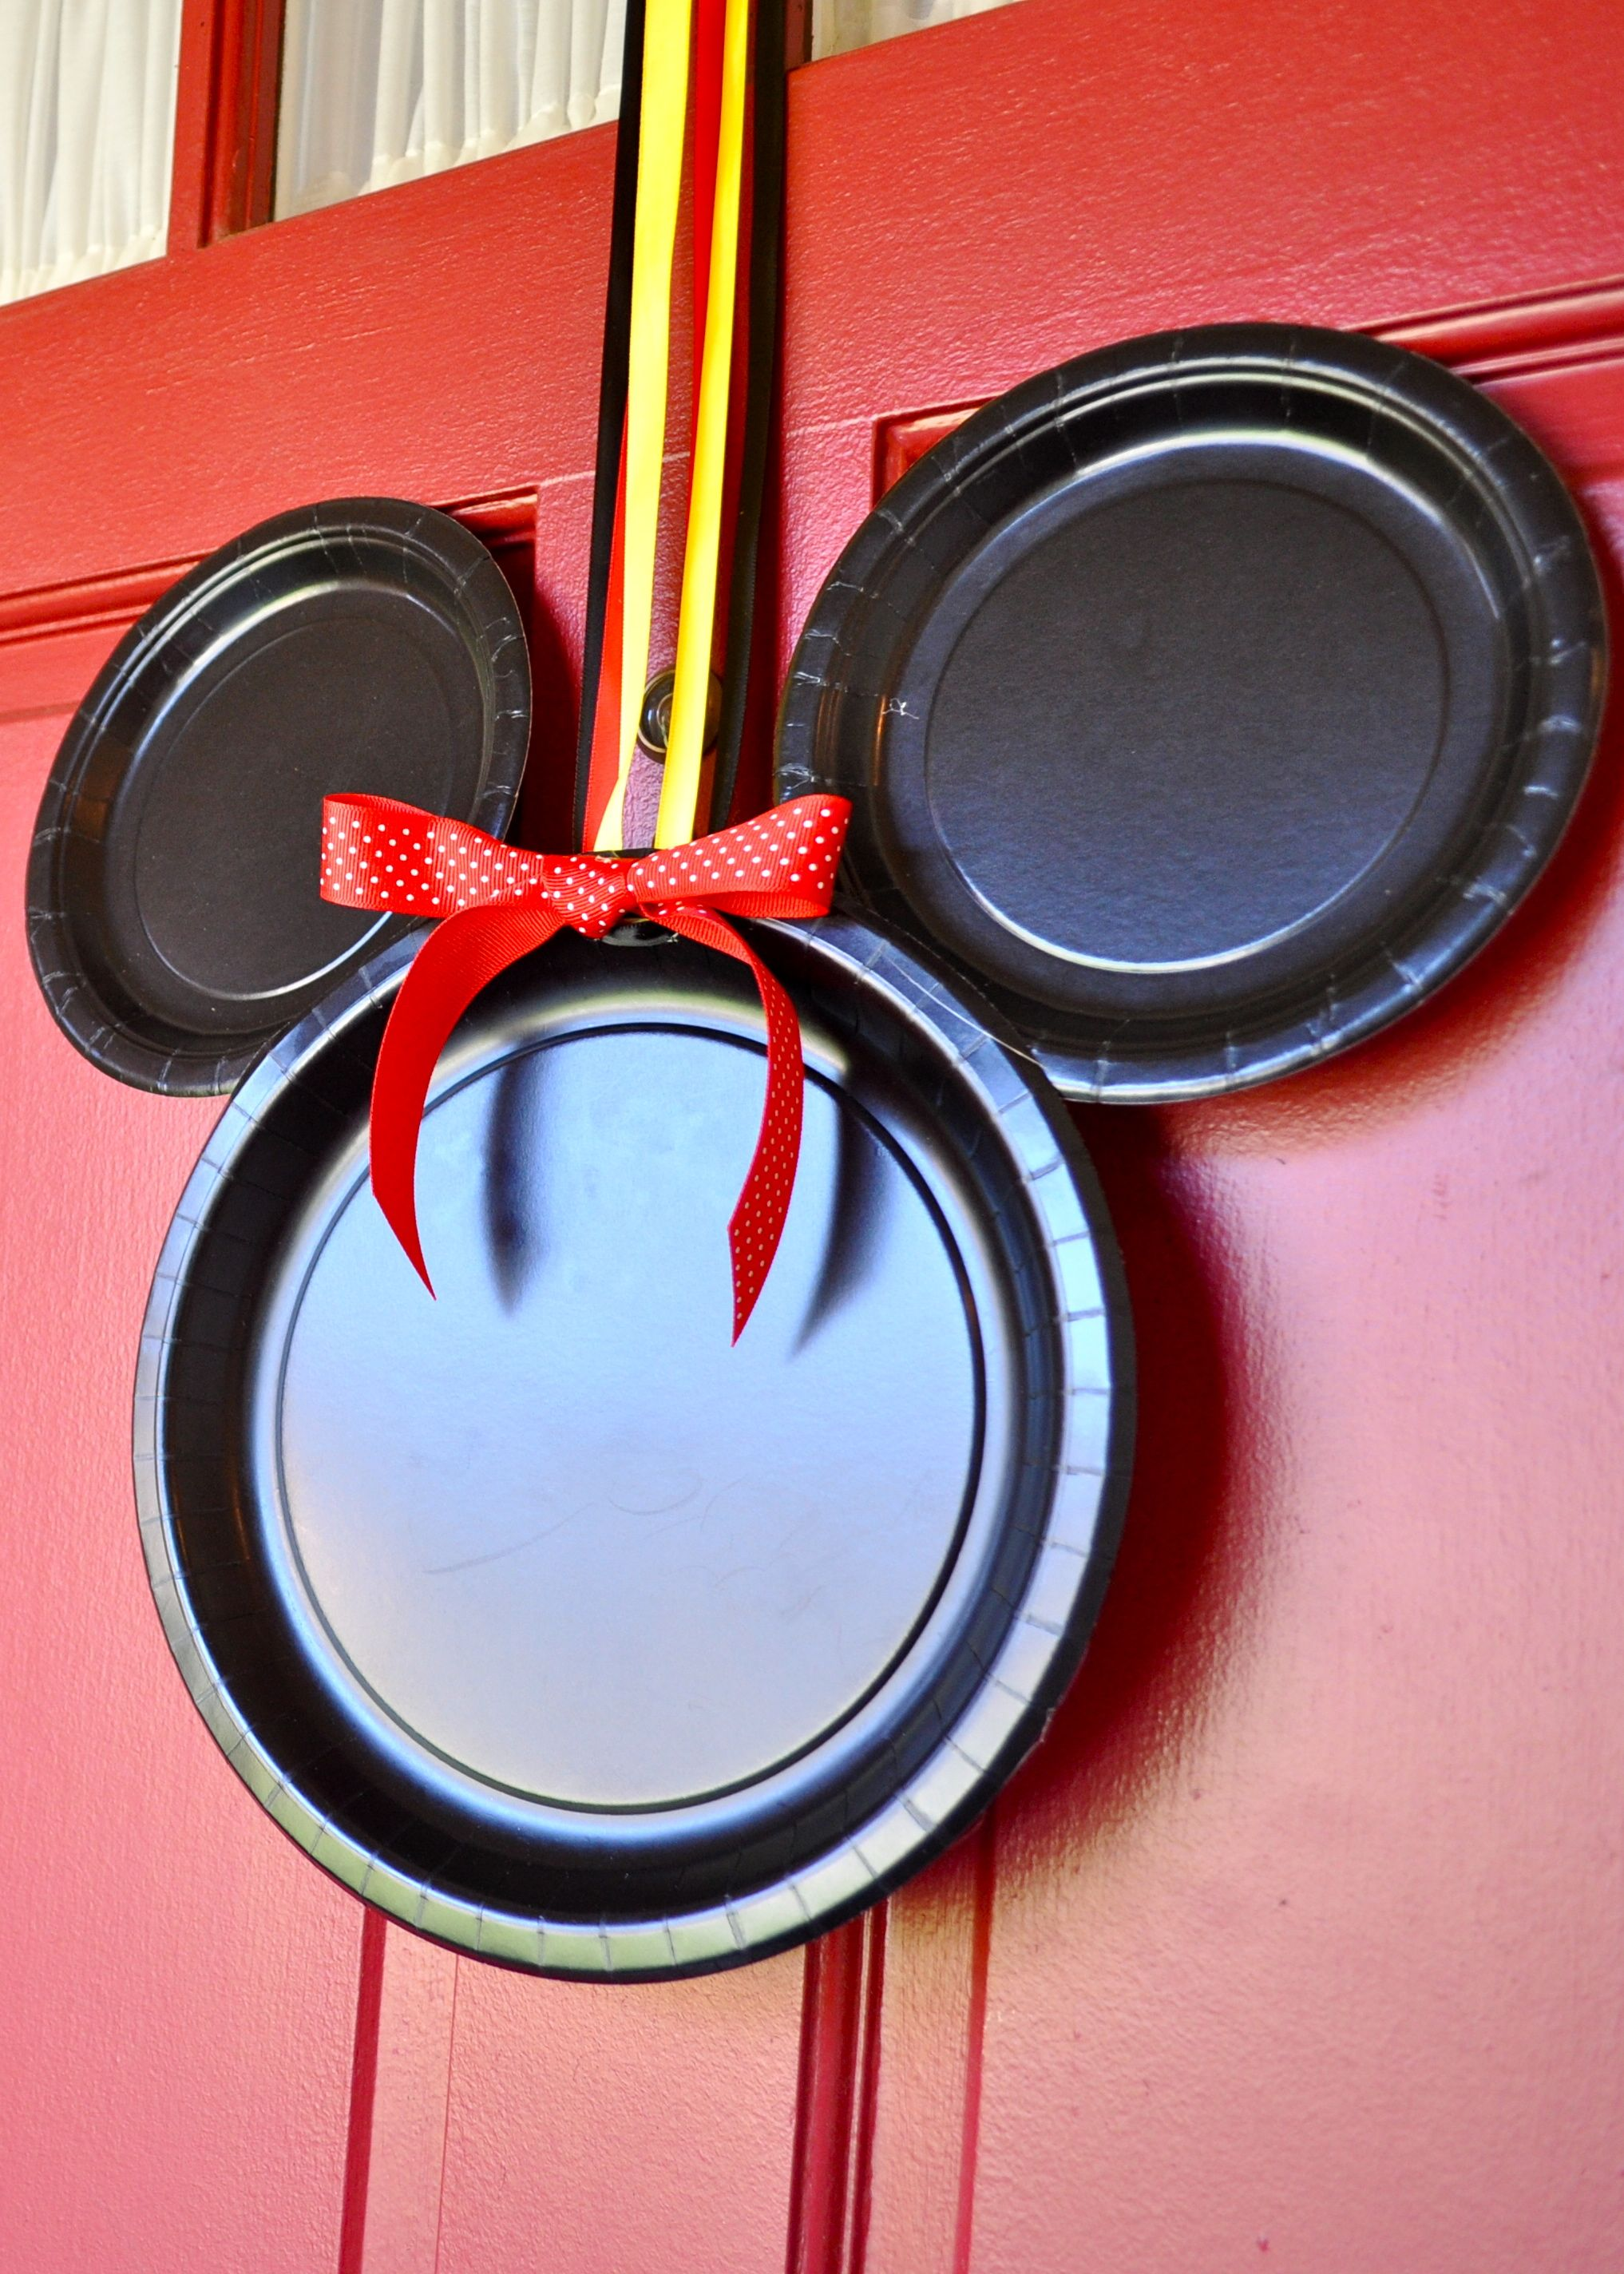 Mickey Mouse Door Decorations - Simple Sojourns